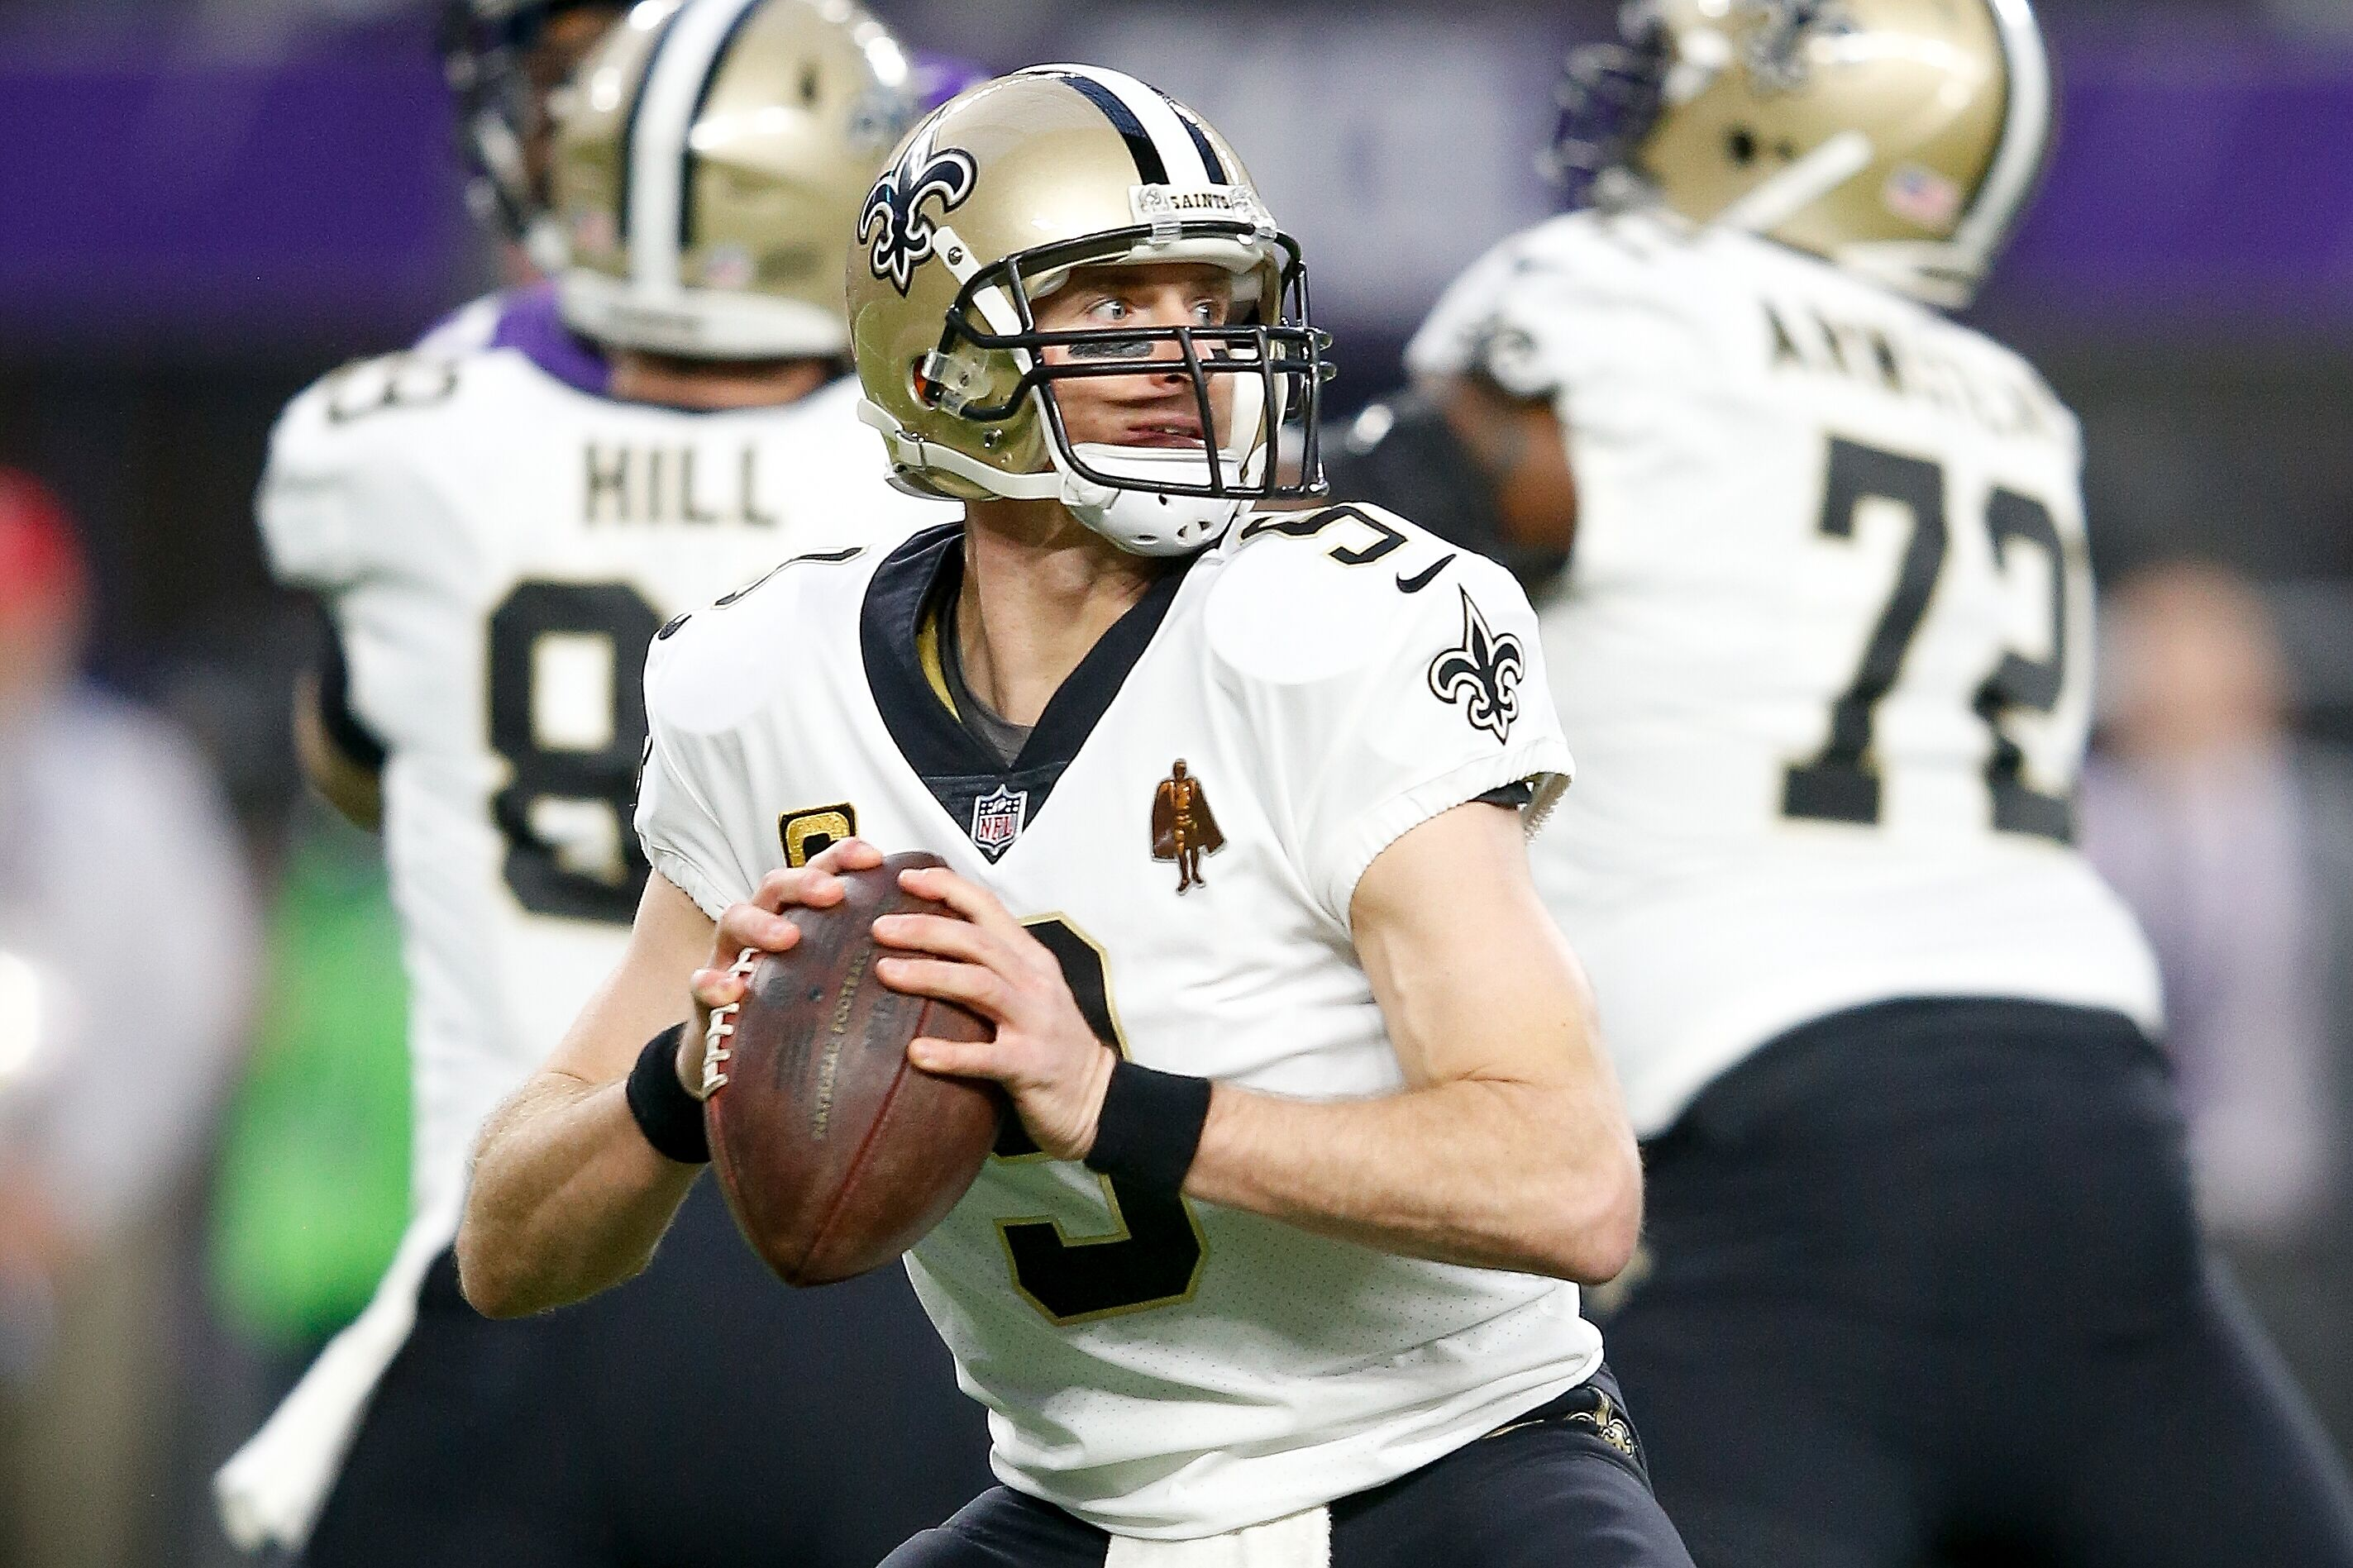 904982138-divisional-round-new-orleans-saints-v-minnesota-vikings.jpg